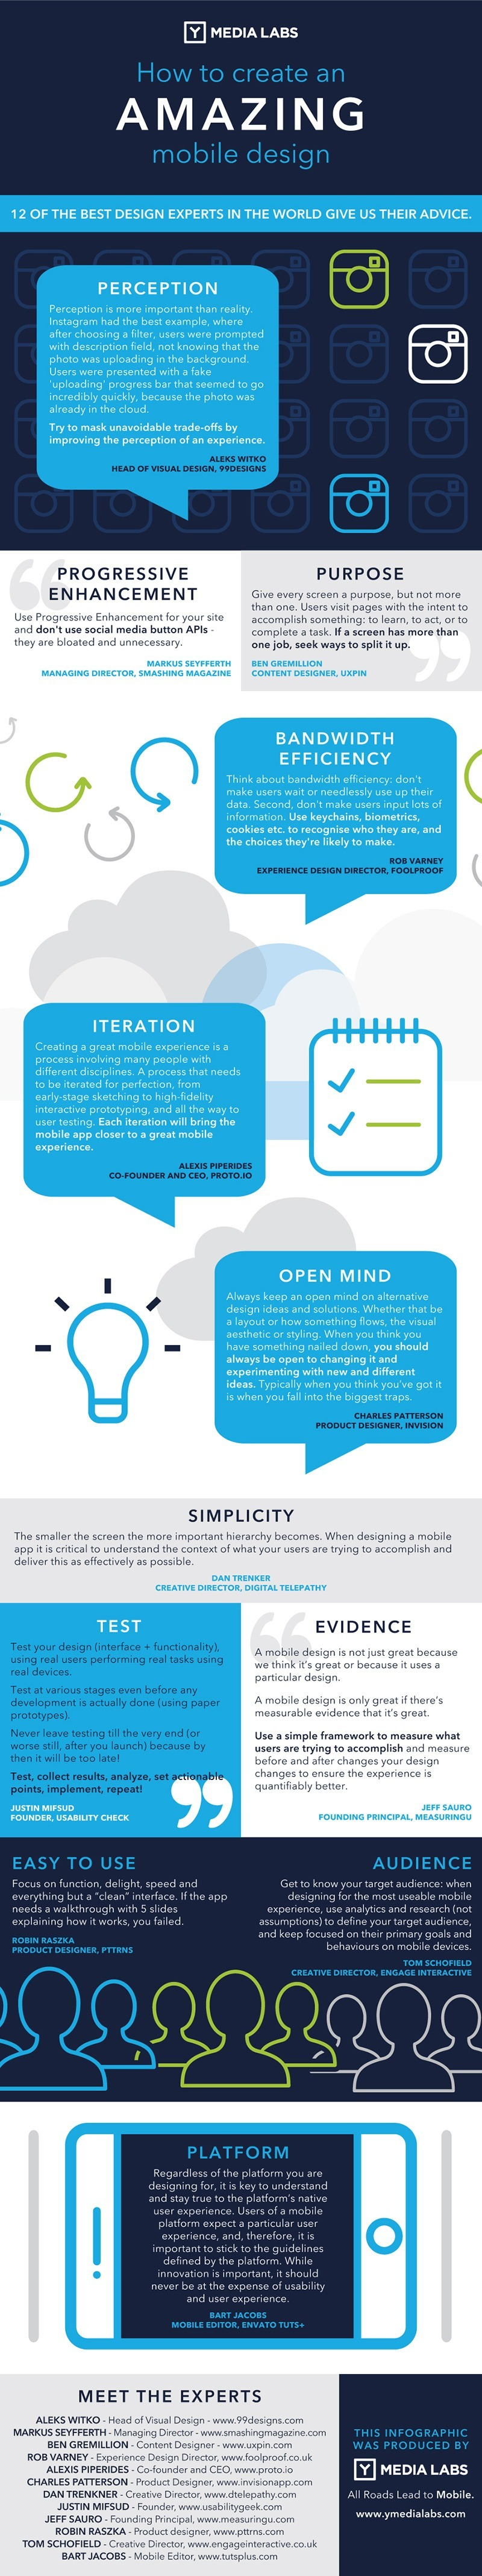 mobile design advice infographic